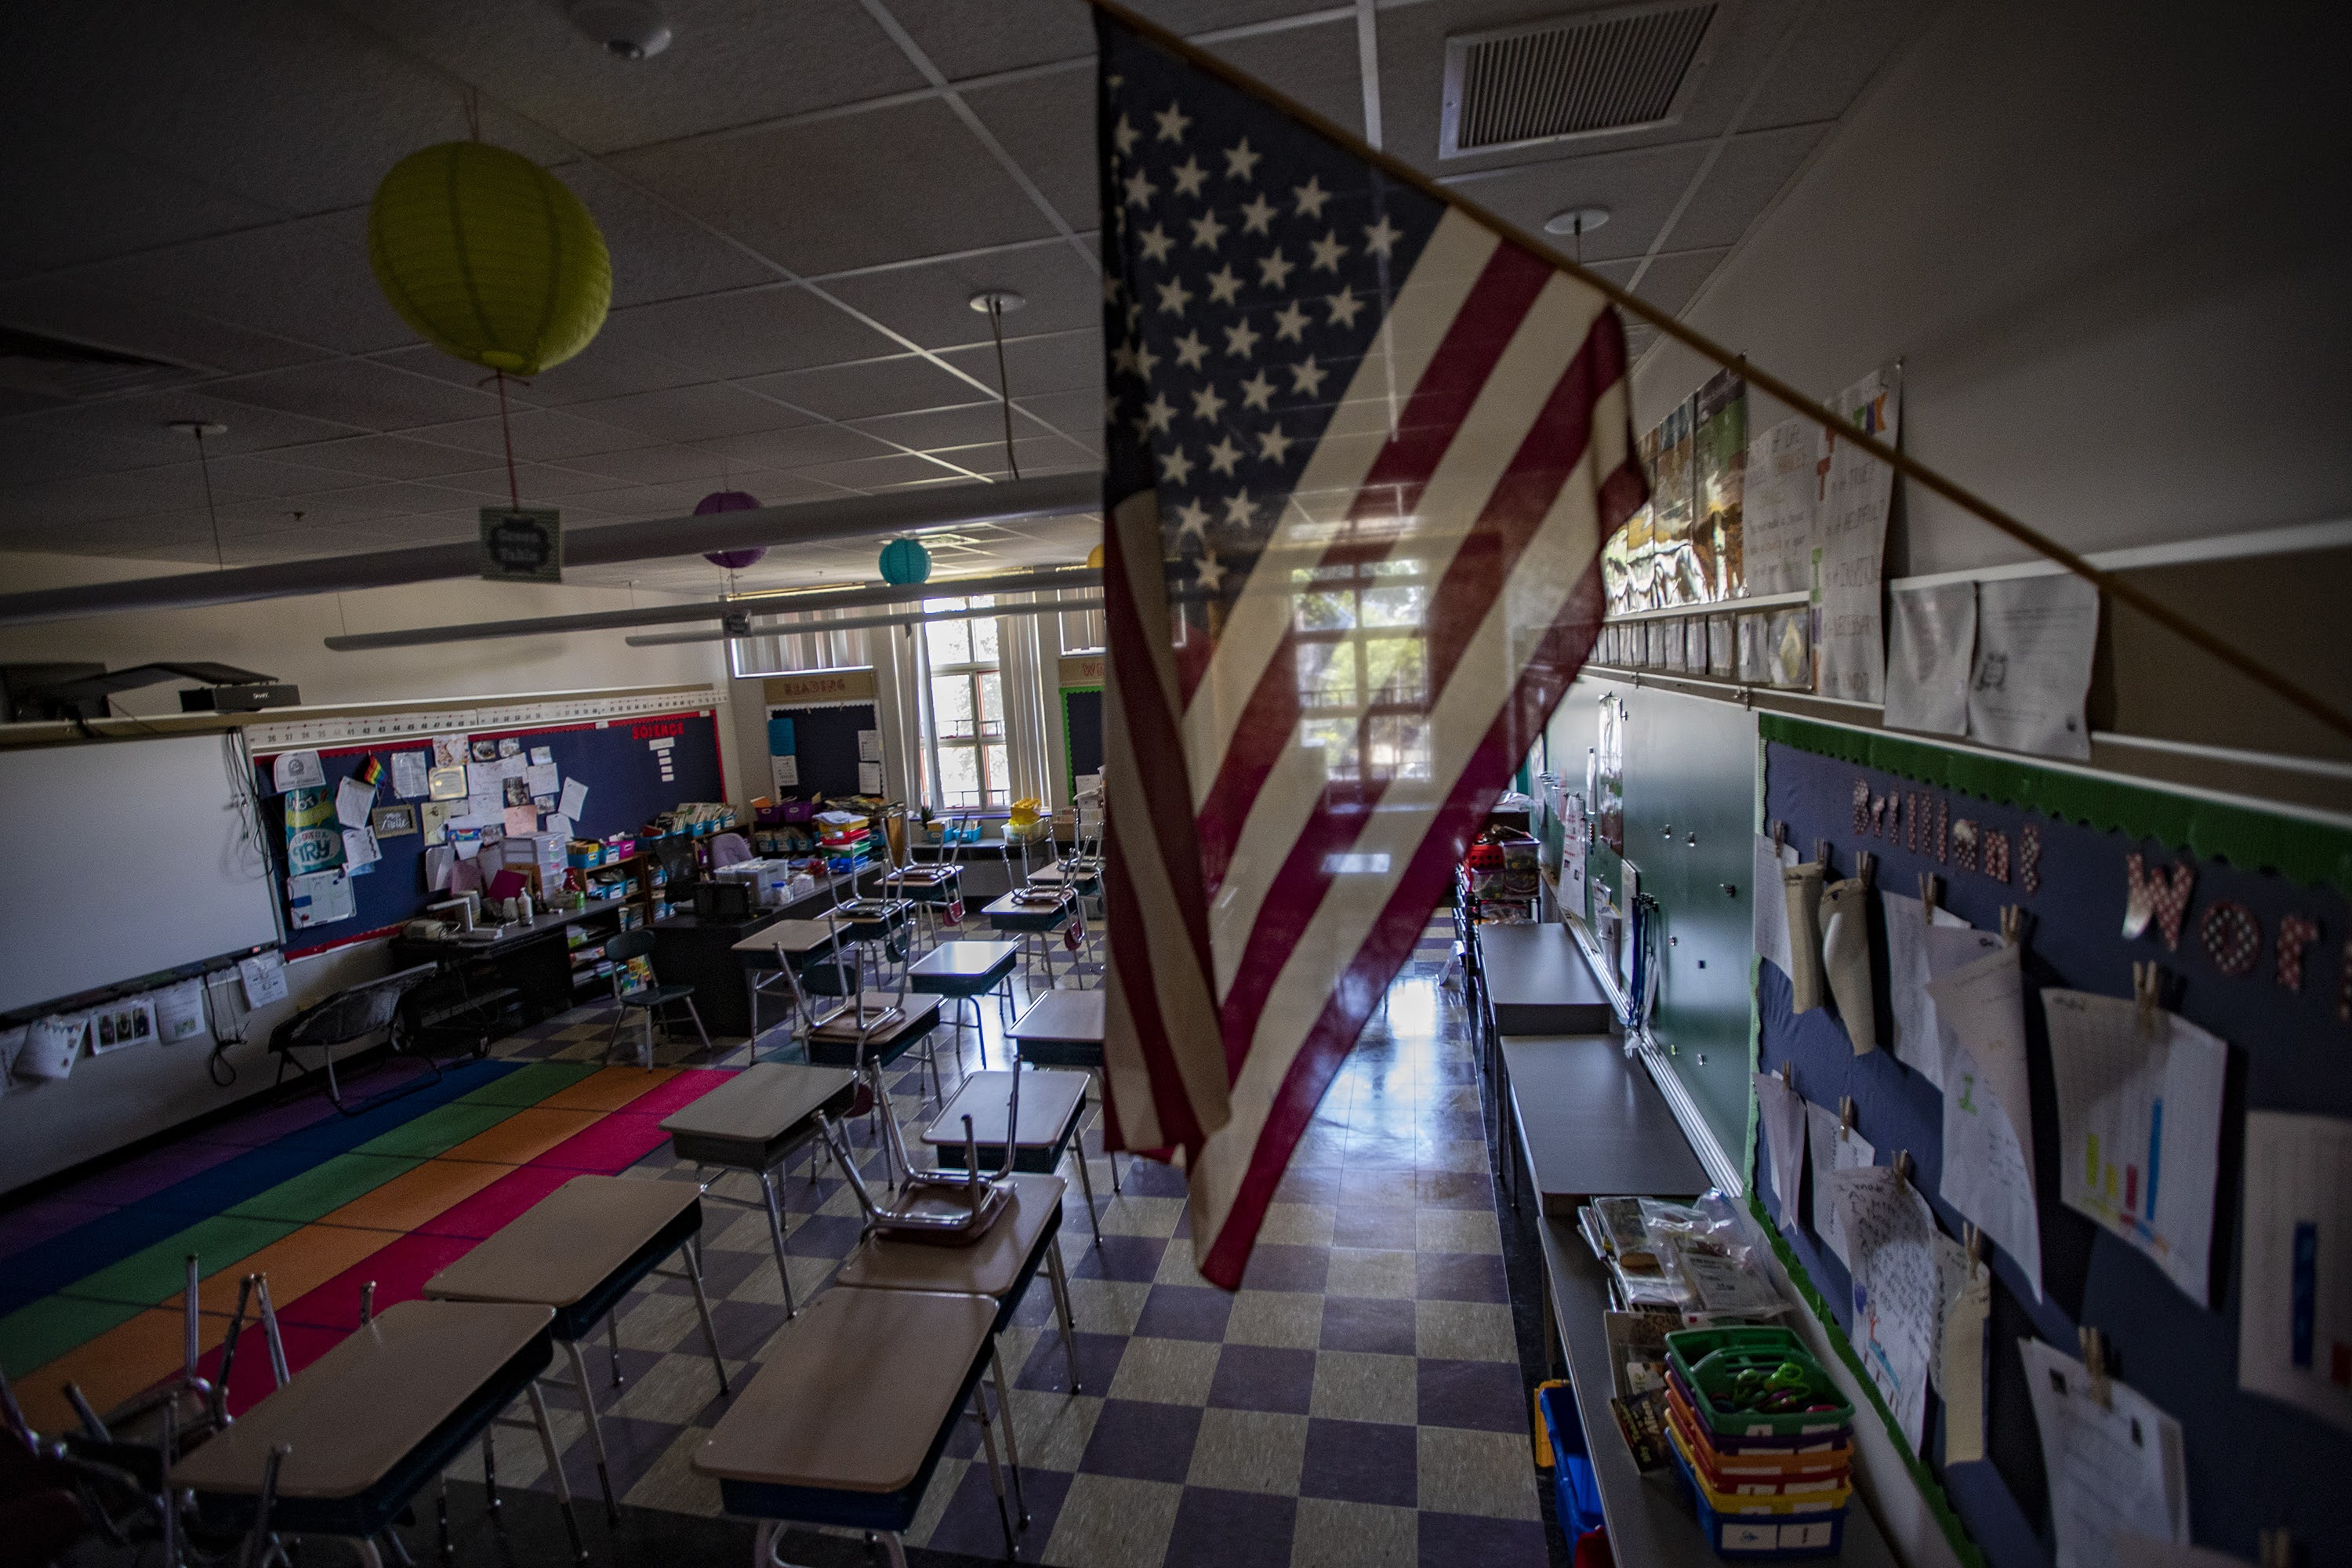 A Boston-area school classroom that has been empty since March 2020 when schools began to close due to the coronavirus pandemic. (Jesse Costa/WBUR)